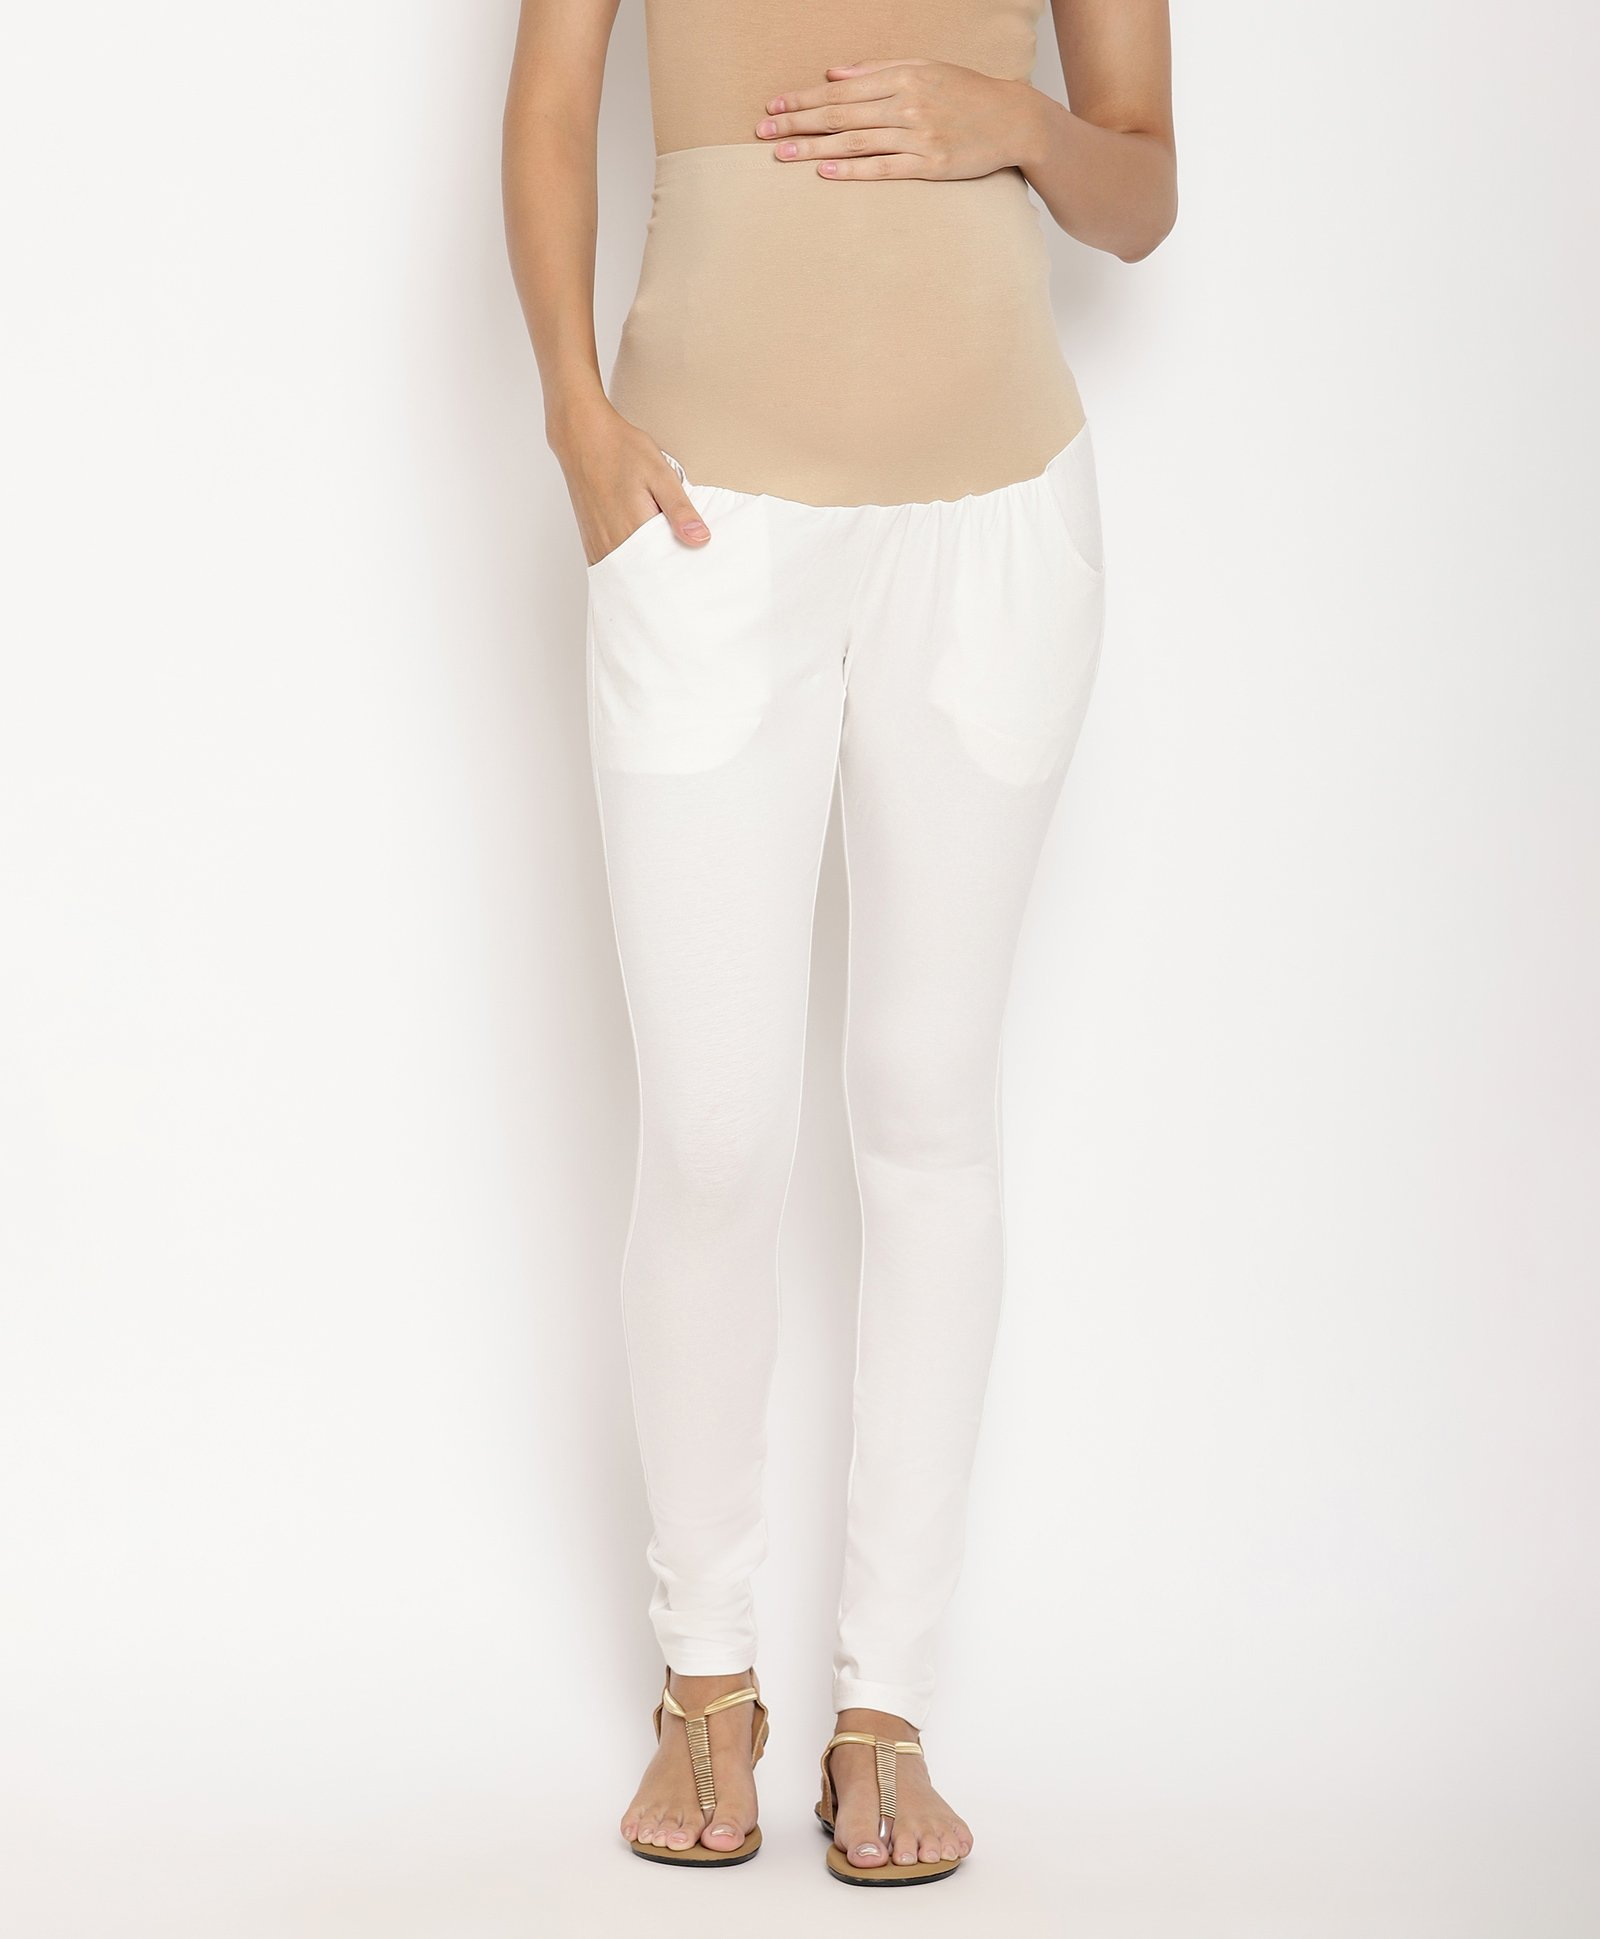 9d87de78cf82a1 Kriti Leggings With Attached Tummy Hug & Pockets White Online in ...